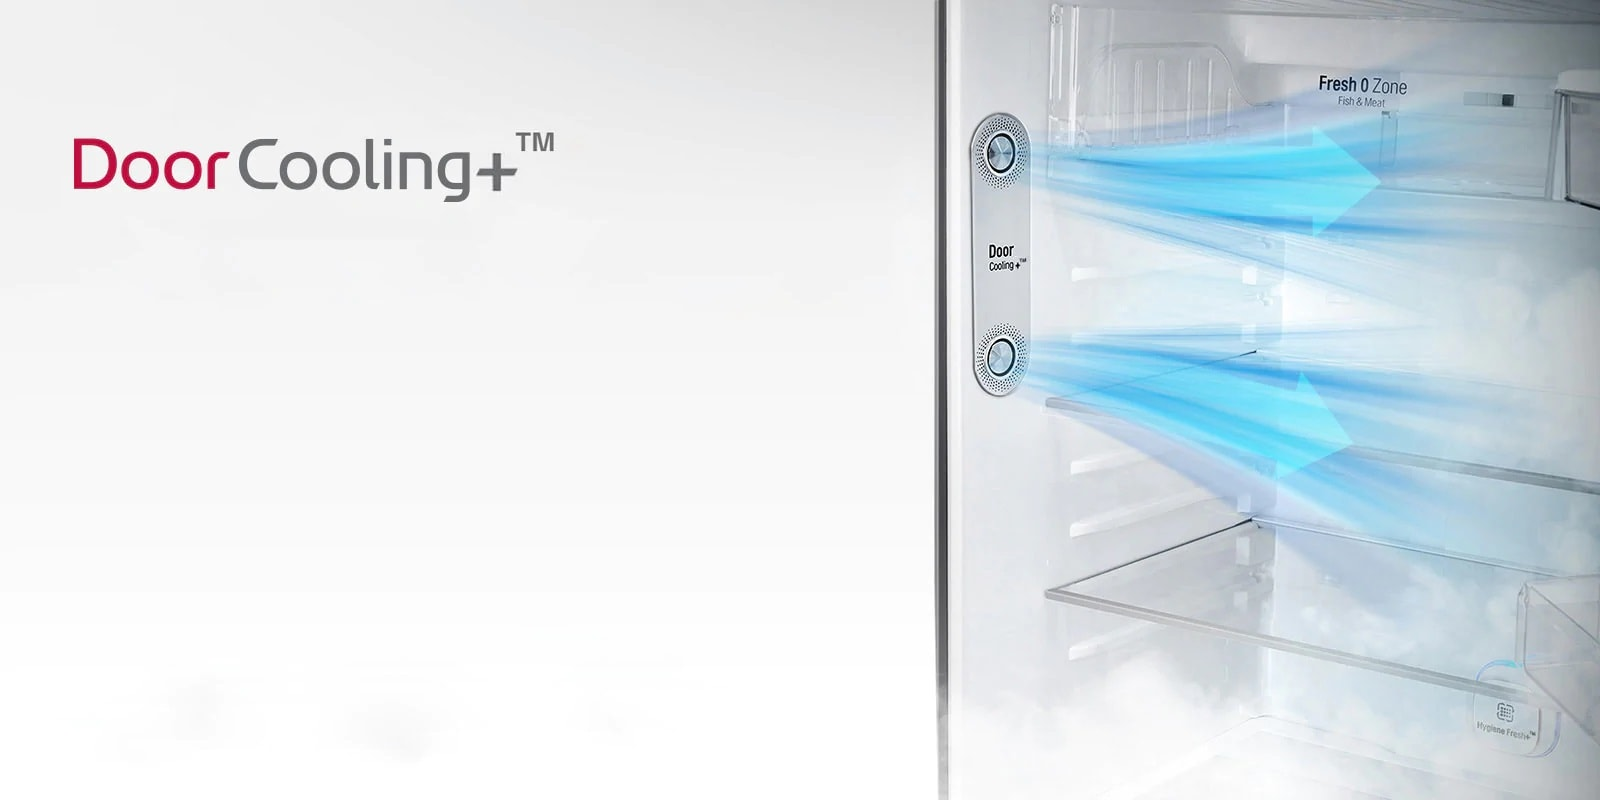 More even and 35% faster cooling3